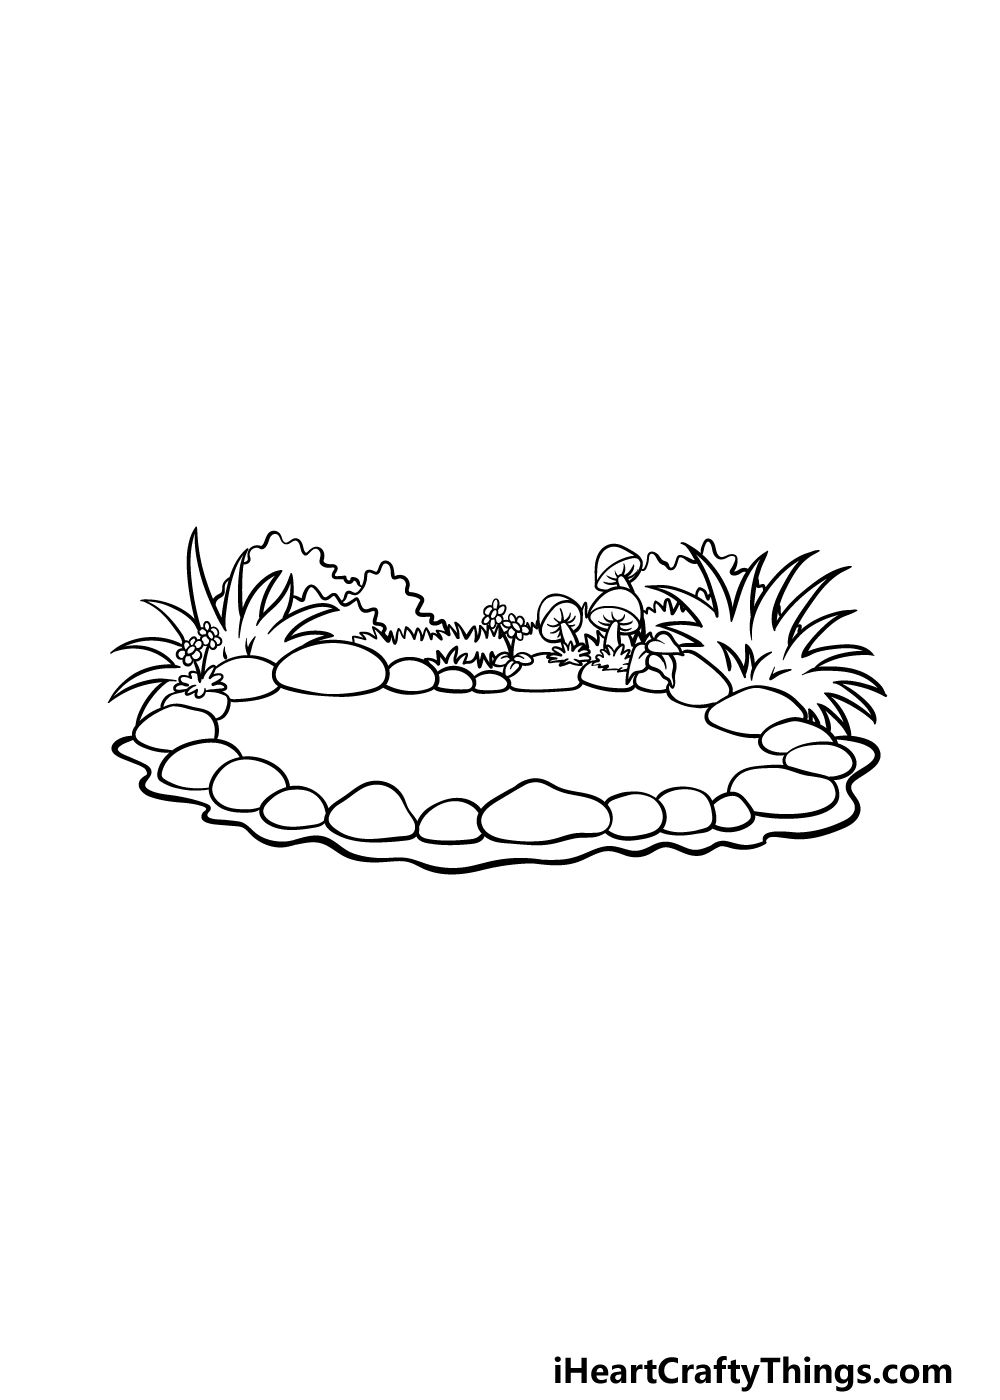 drawing a pond step 5